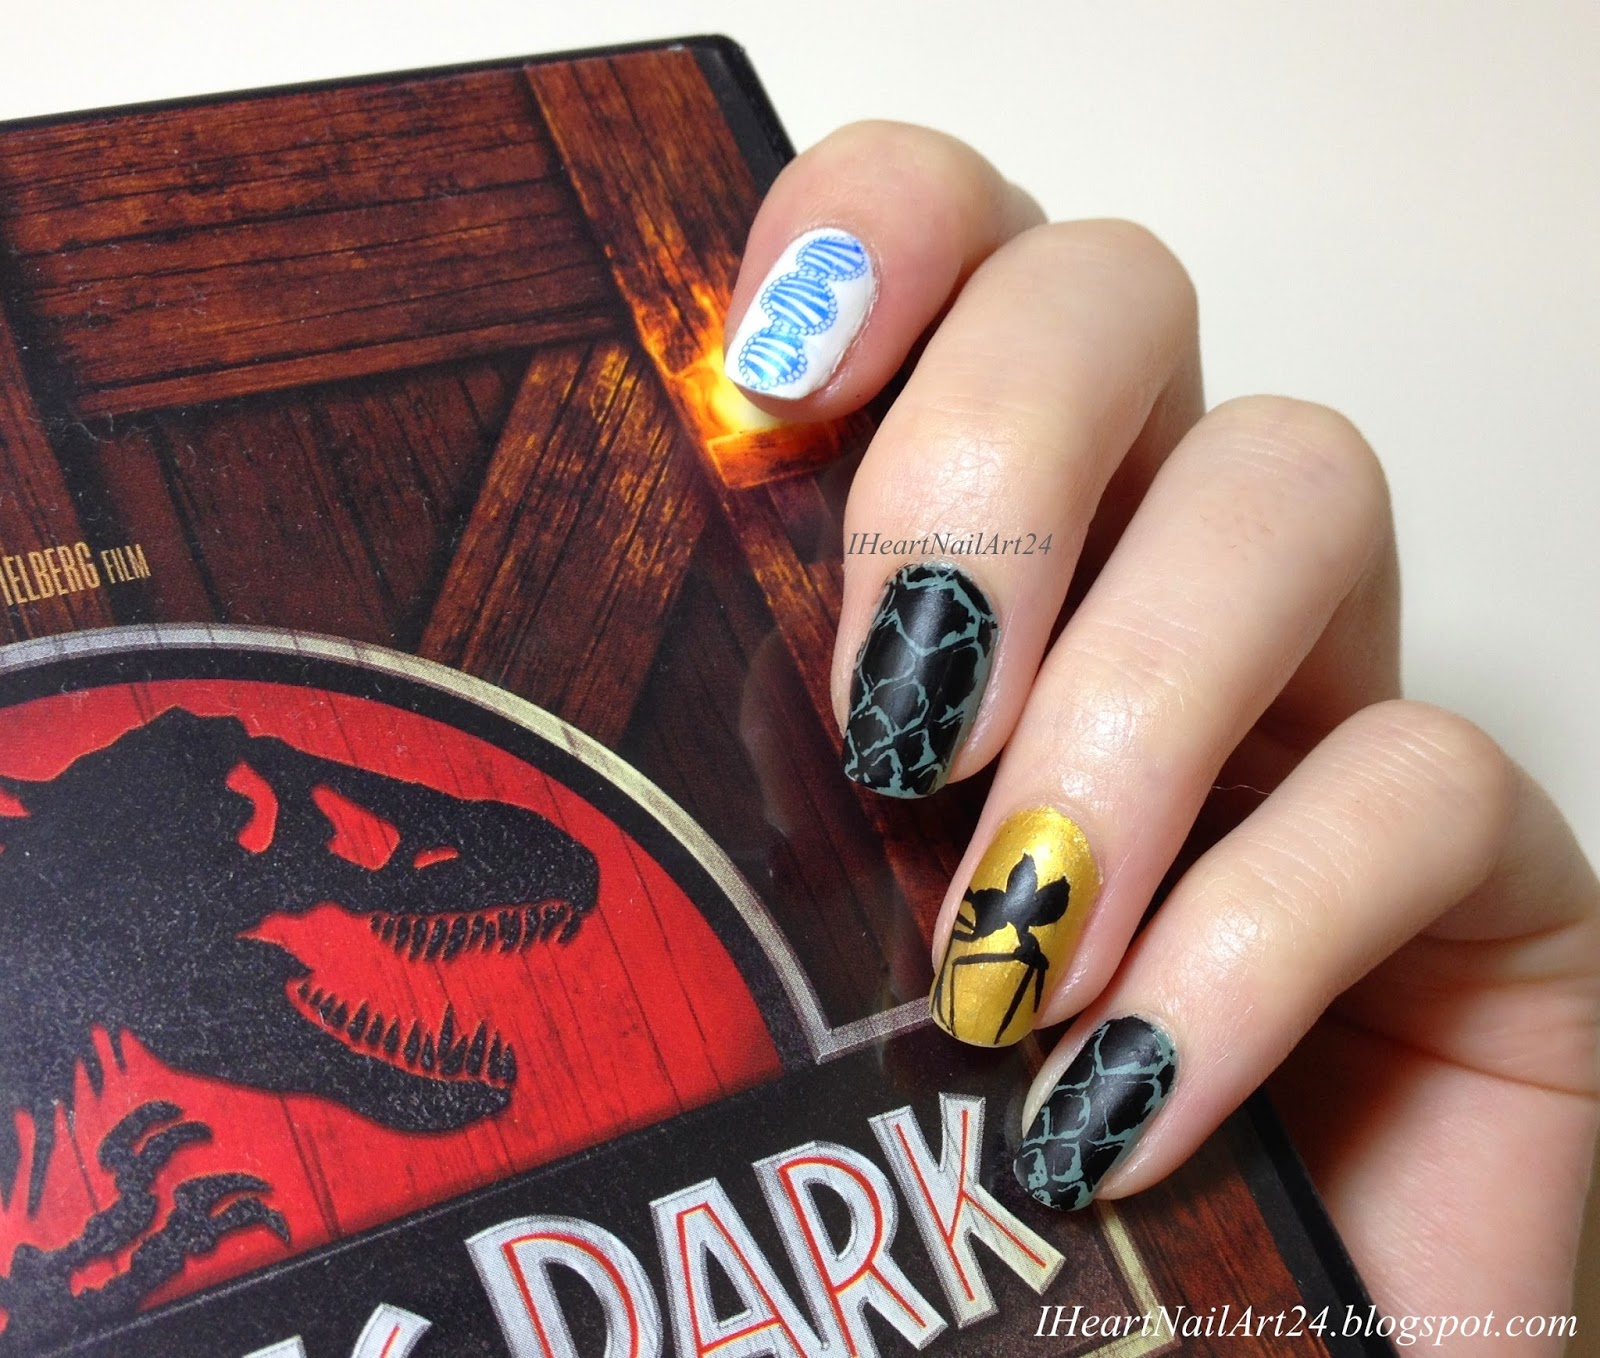 Welcome... to Jurassic Park! | I Heart Nail Art